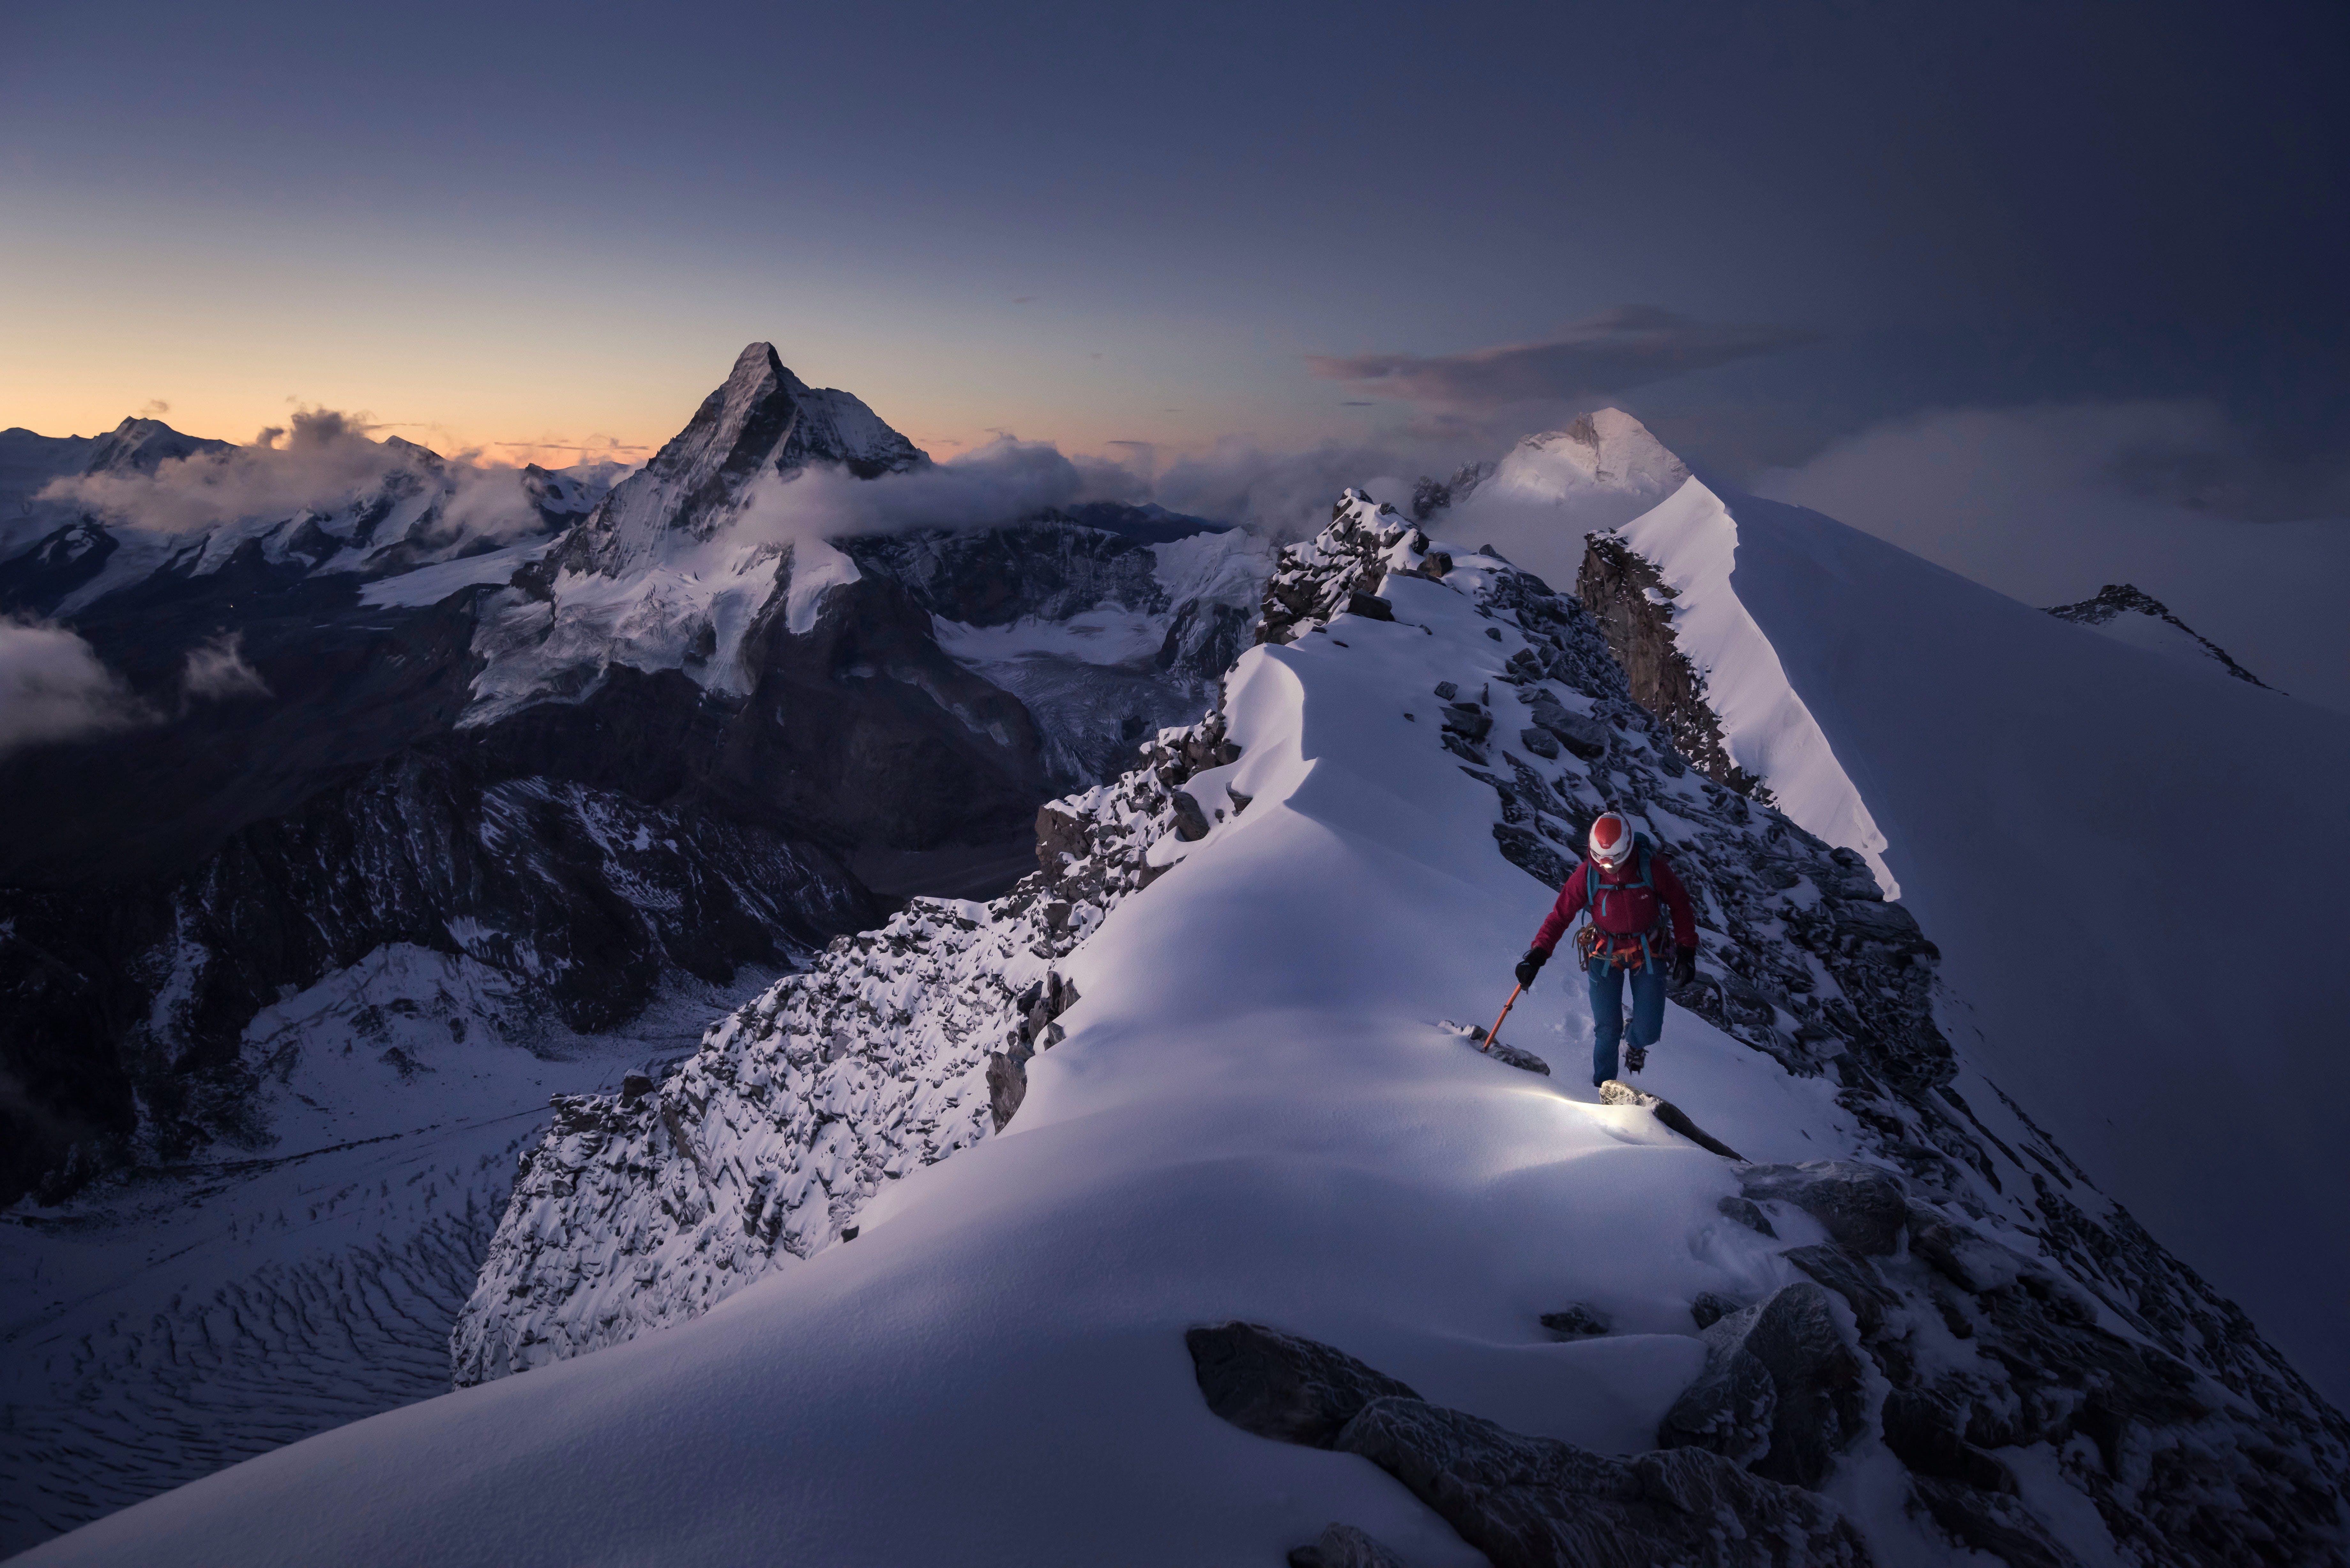 Banff Mountain Film Festival World Tour - Wagga Wagga Accommodation